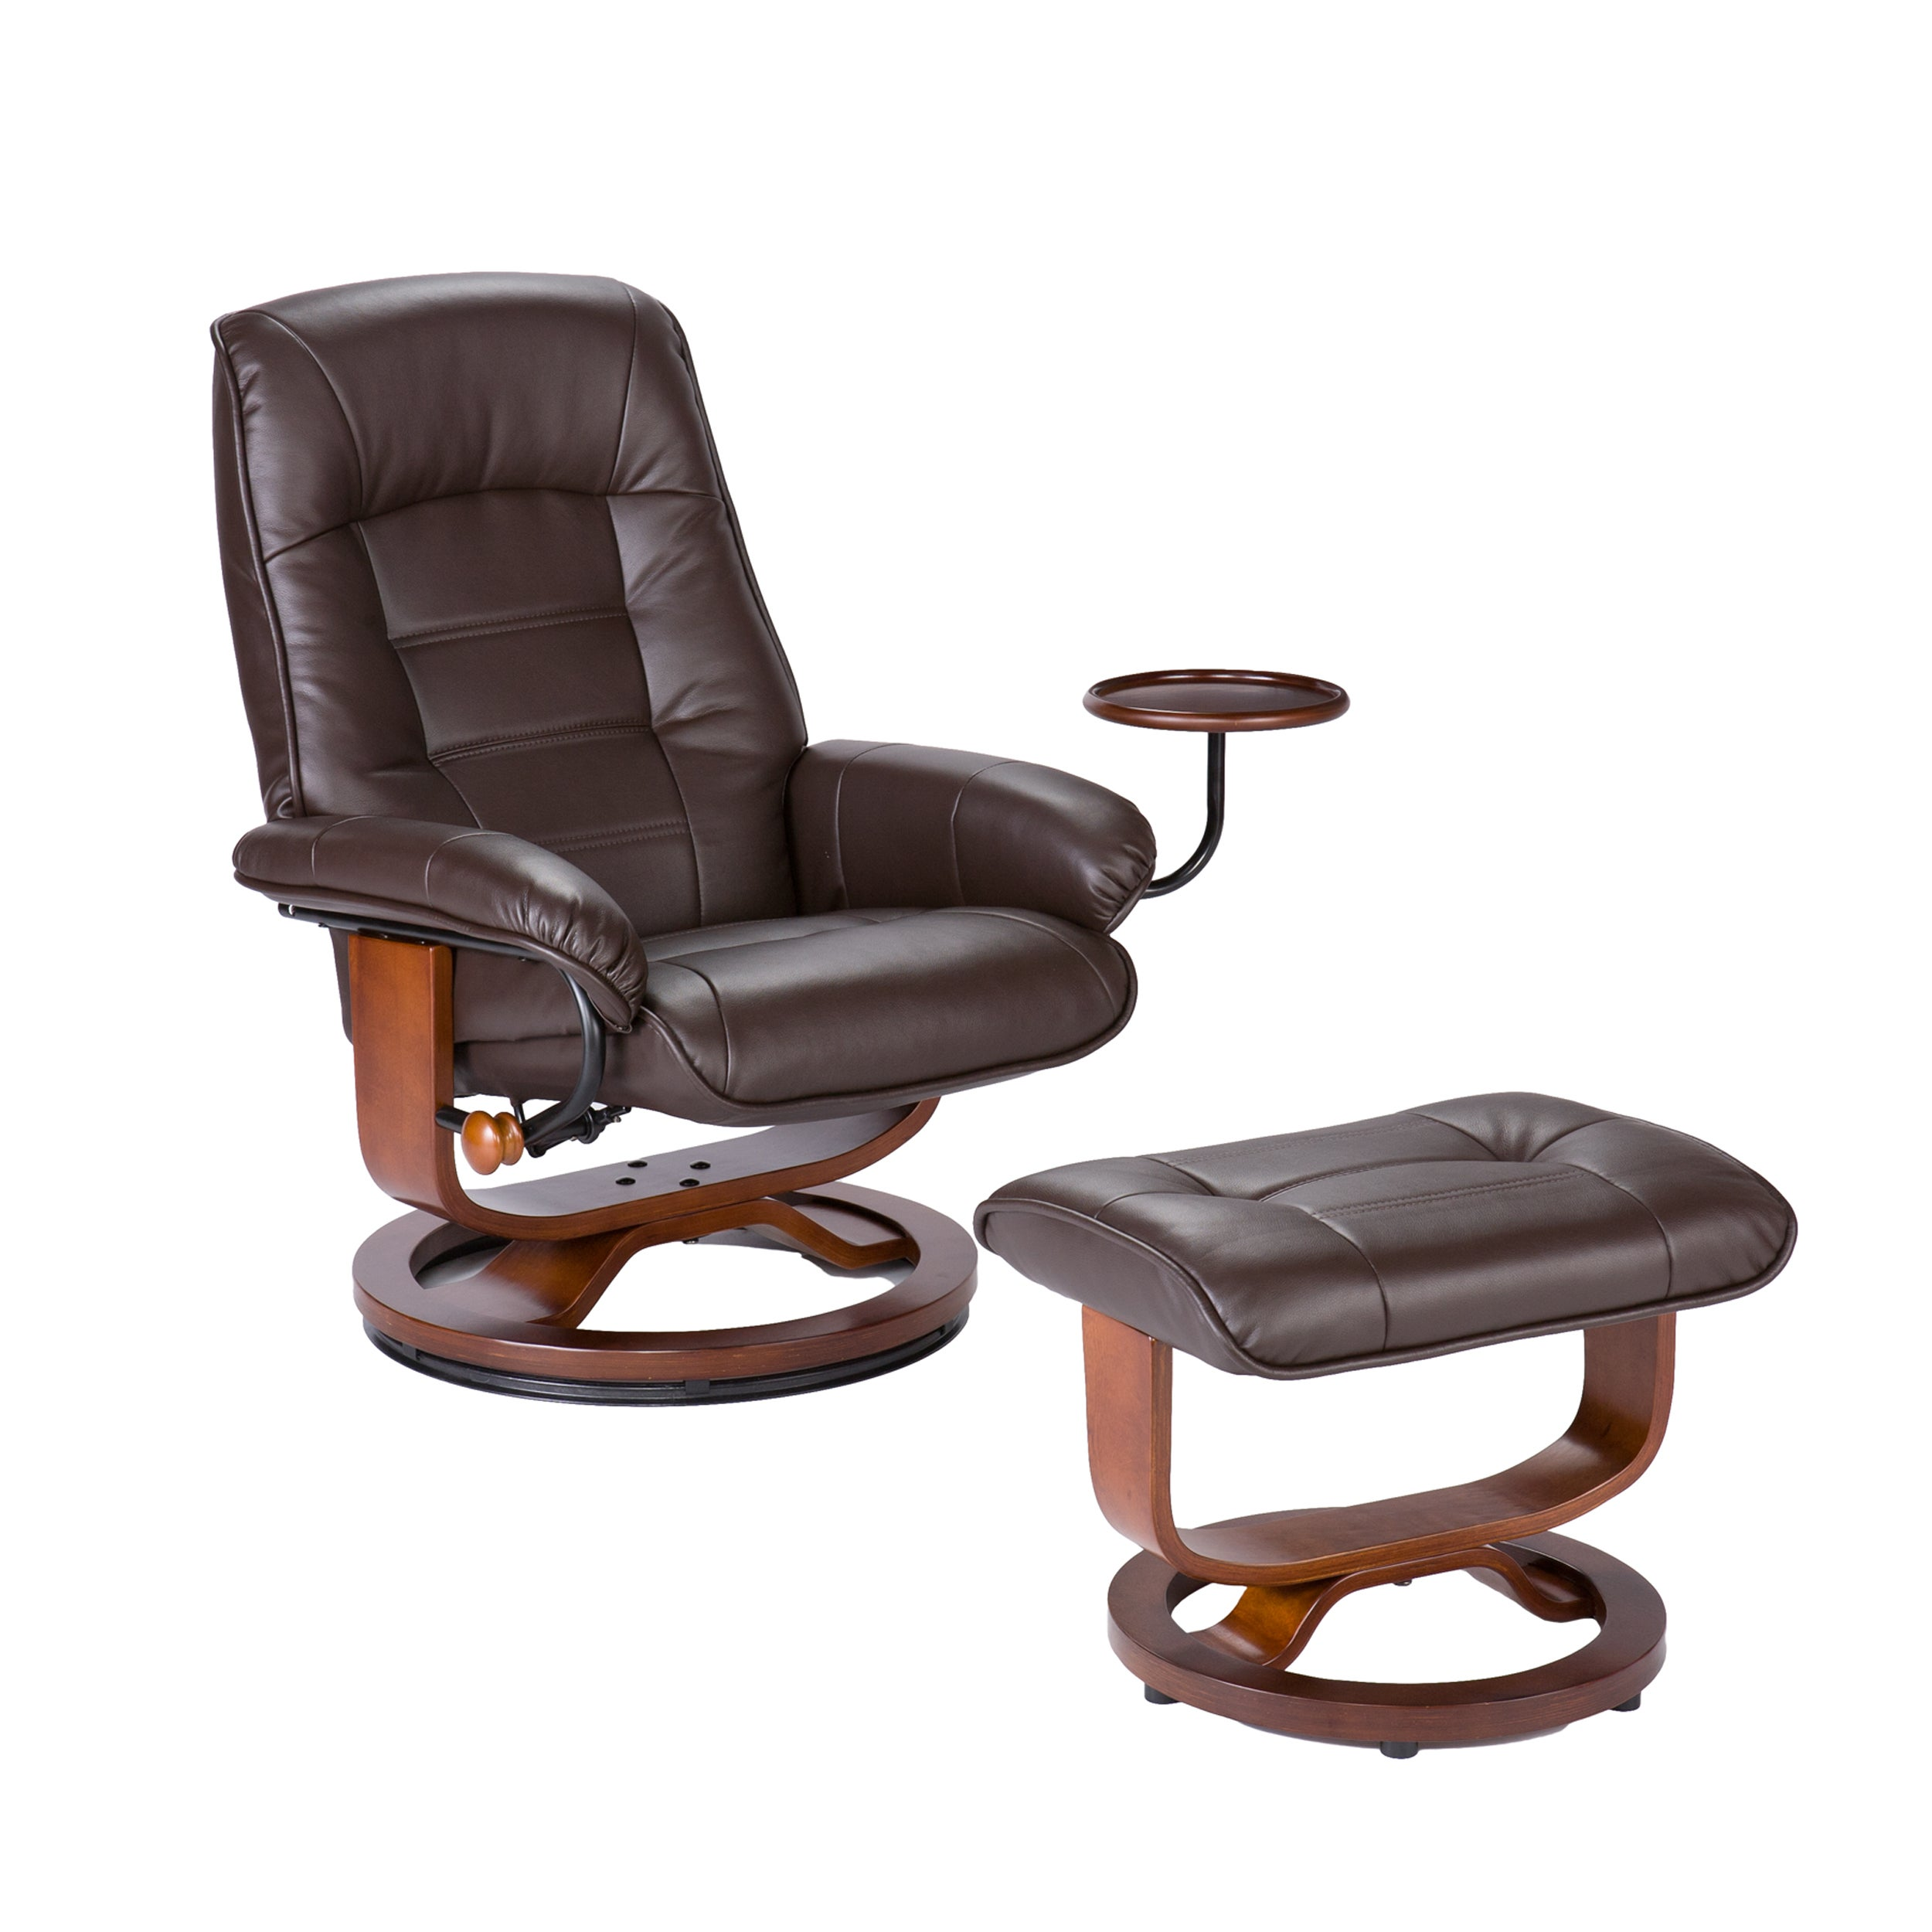 Superbe Harper Blvd Windsor Brown Leather Recliner And Ottoman Set